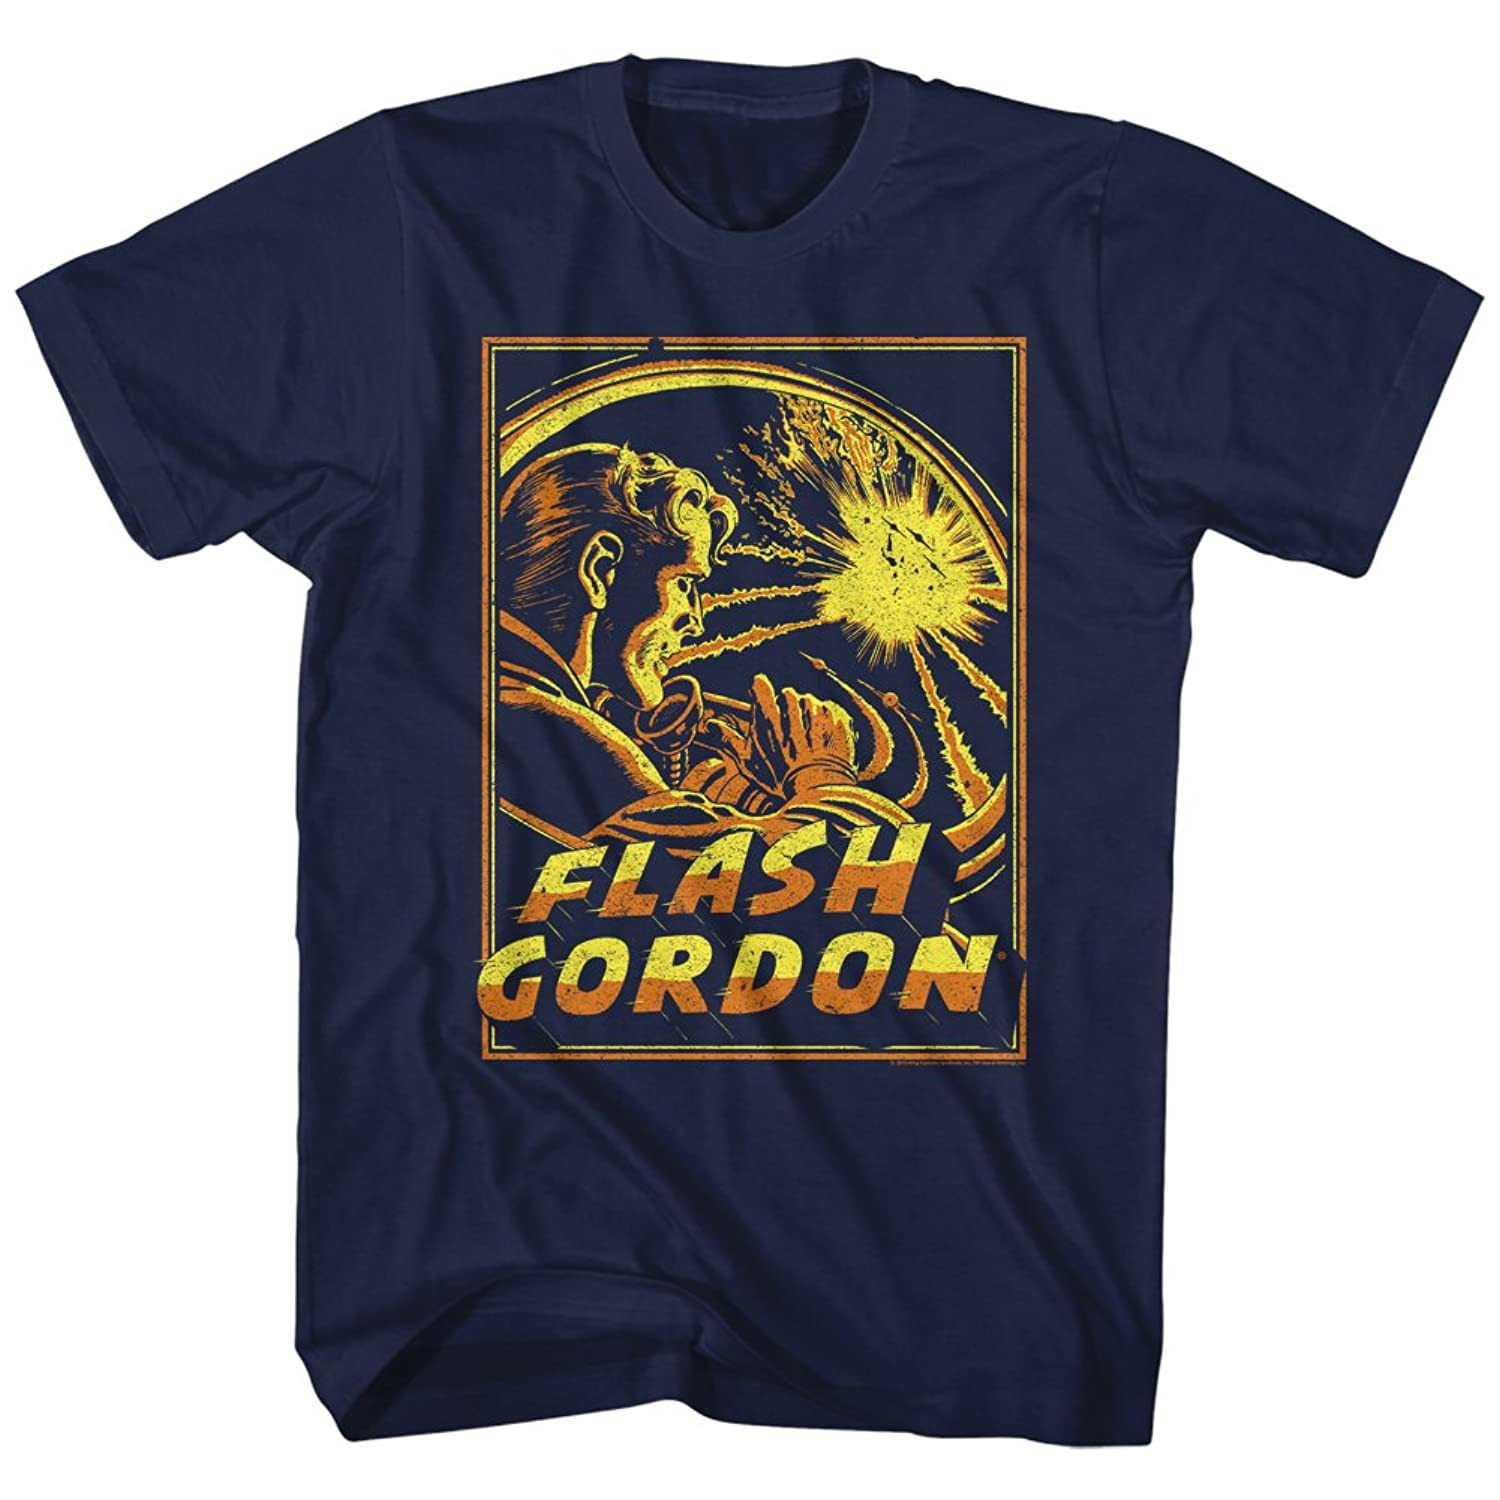 Flash Gordon 1930's Comic Strip?Space Explosion Adult T-Shirt Tee